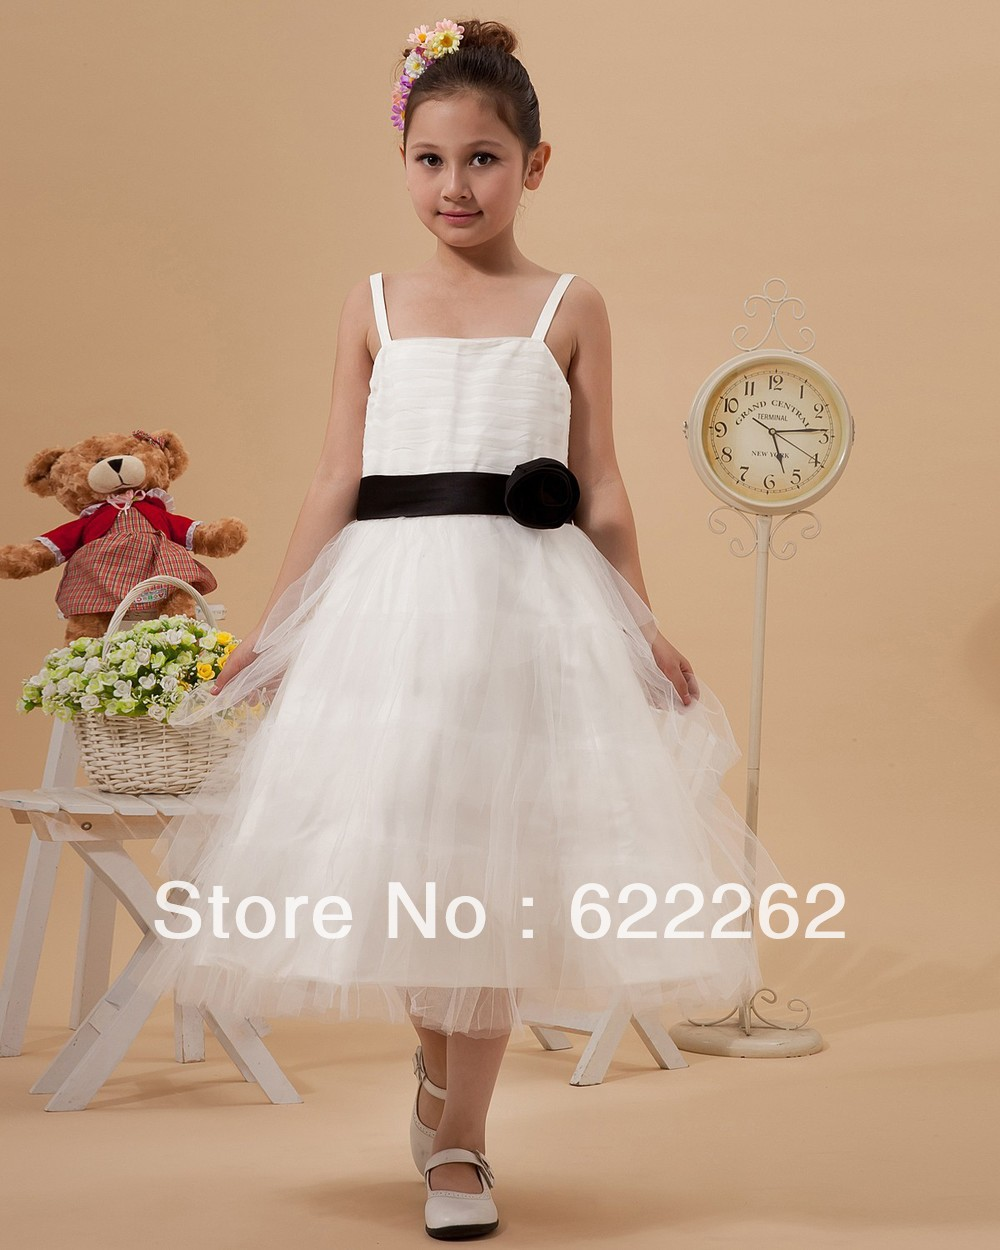 Compare Prices on Discount Flower Girl Dress- Online Shopping/Buy ...